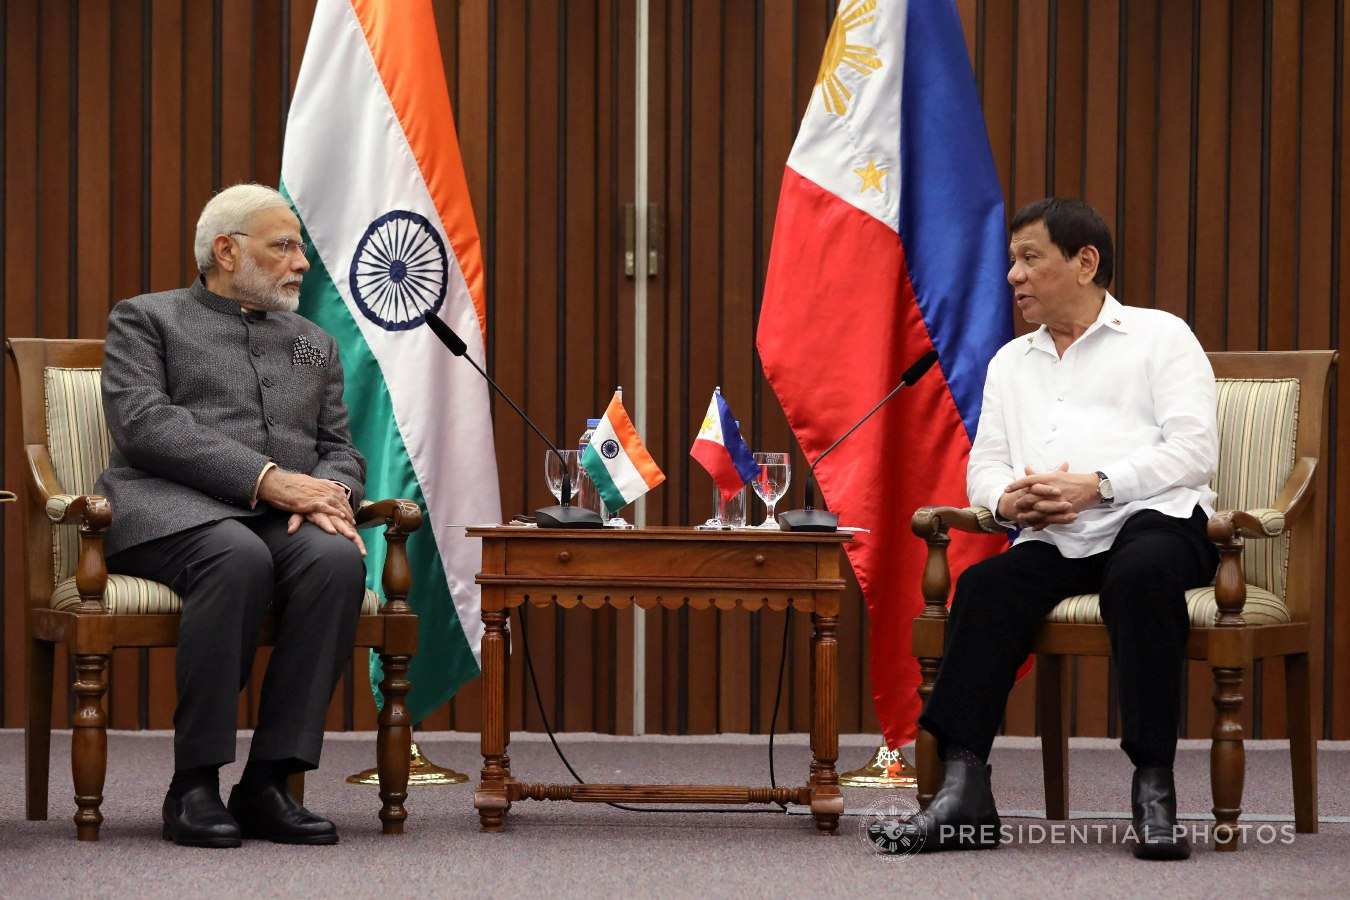 ASEAN troupes to render Ramayana at India-ASEAN summit in January